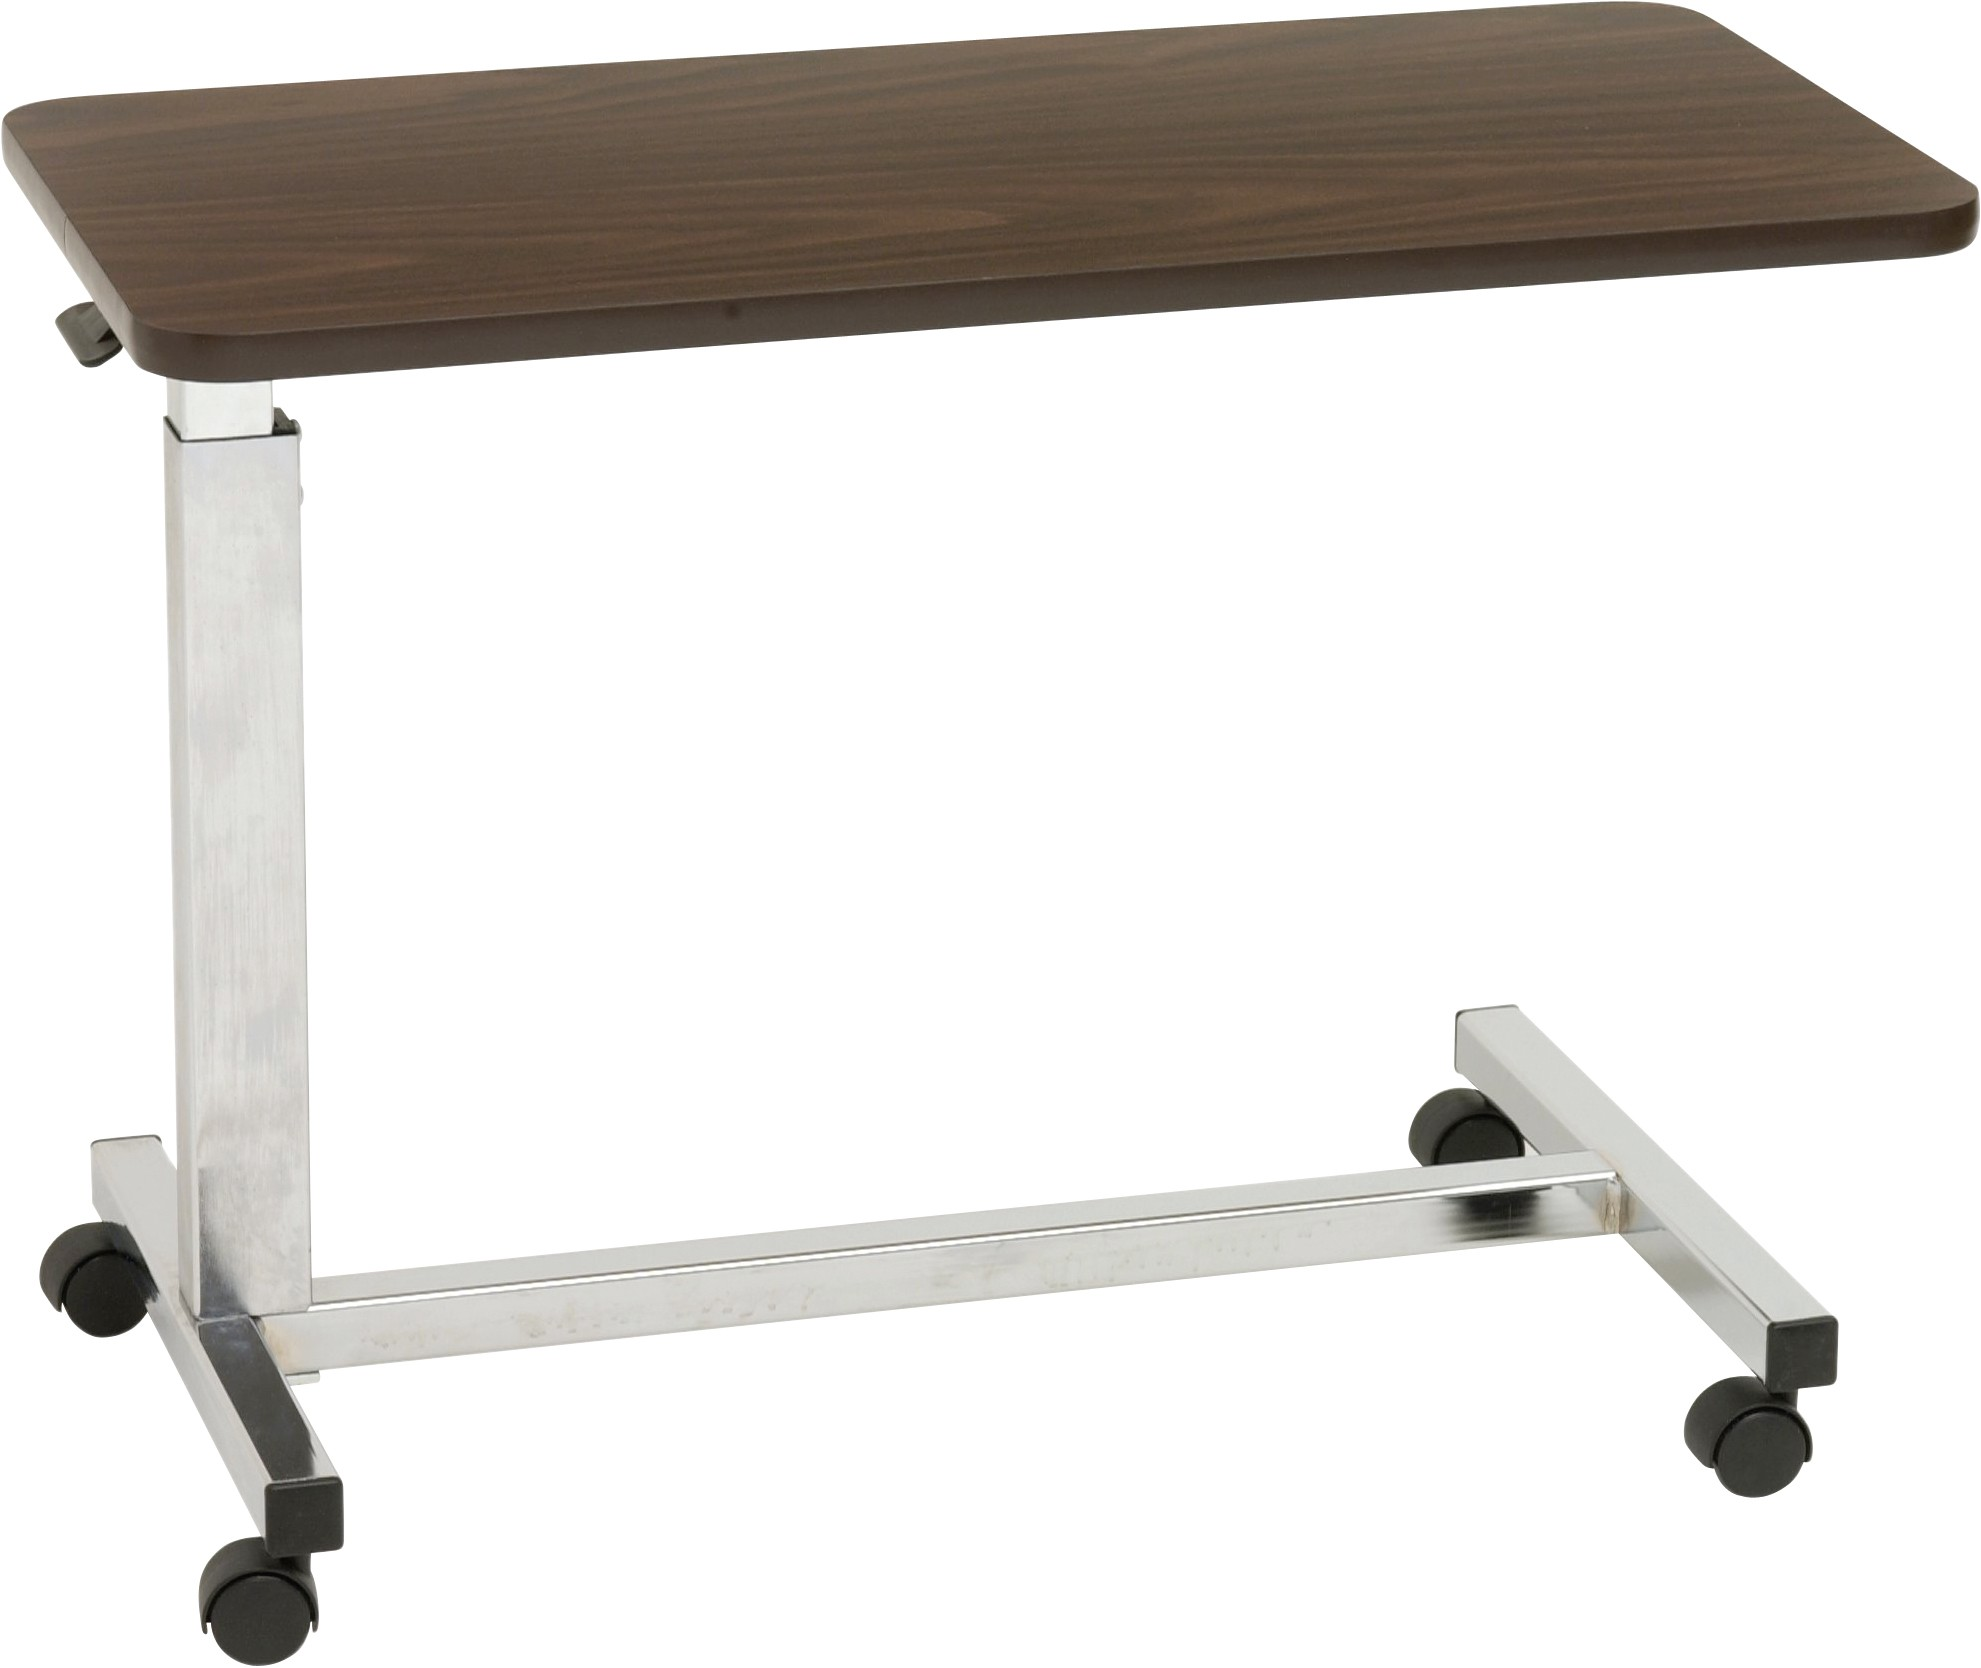 Easy Rise Portable And Adjustable Mobile Table Wheeled Over Bed Or